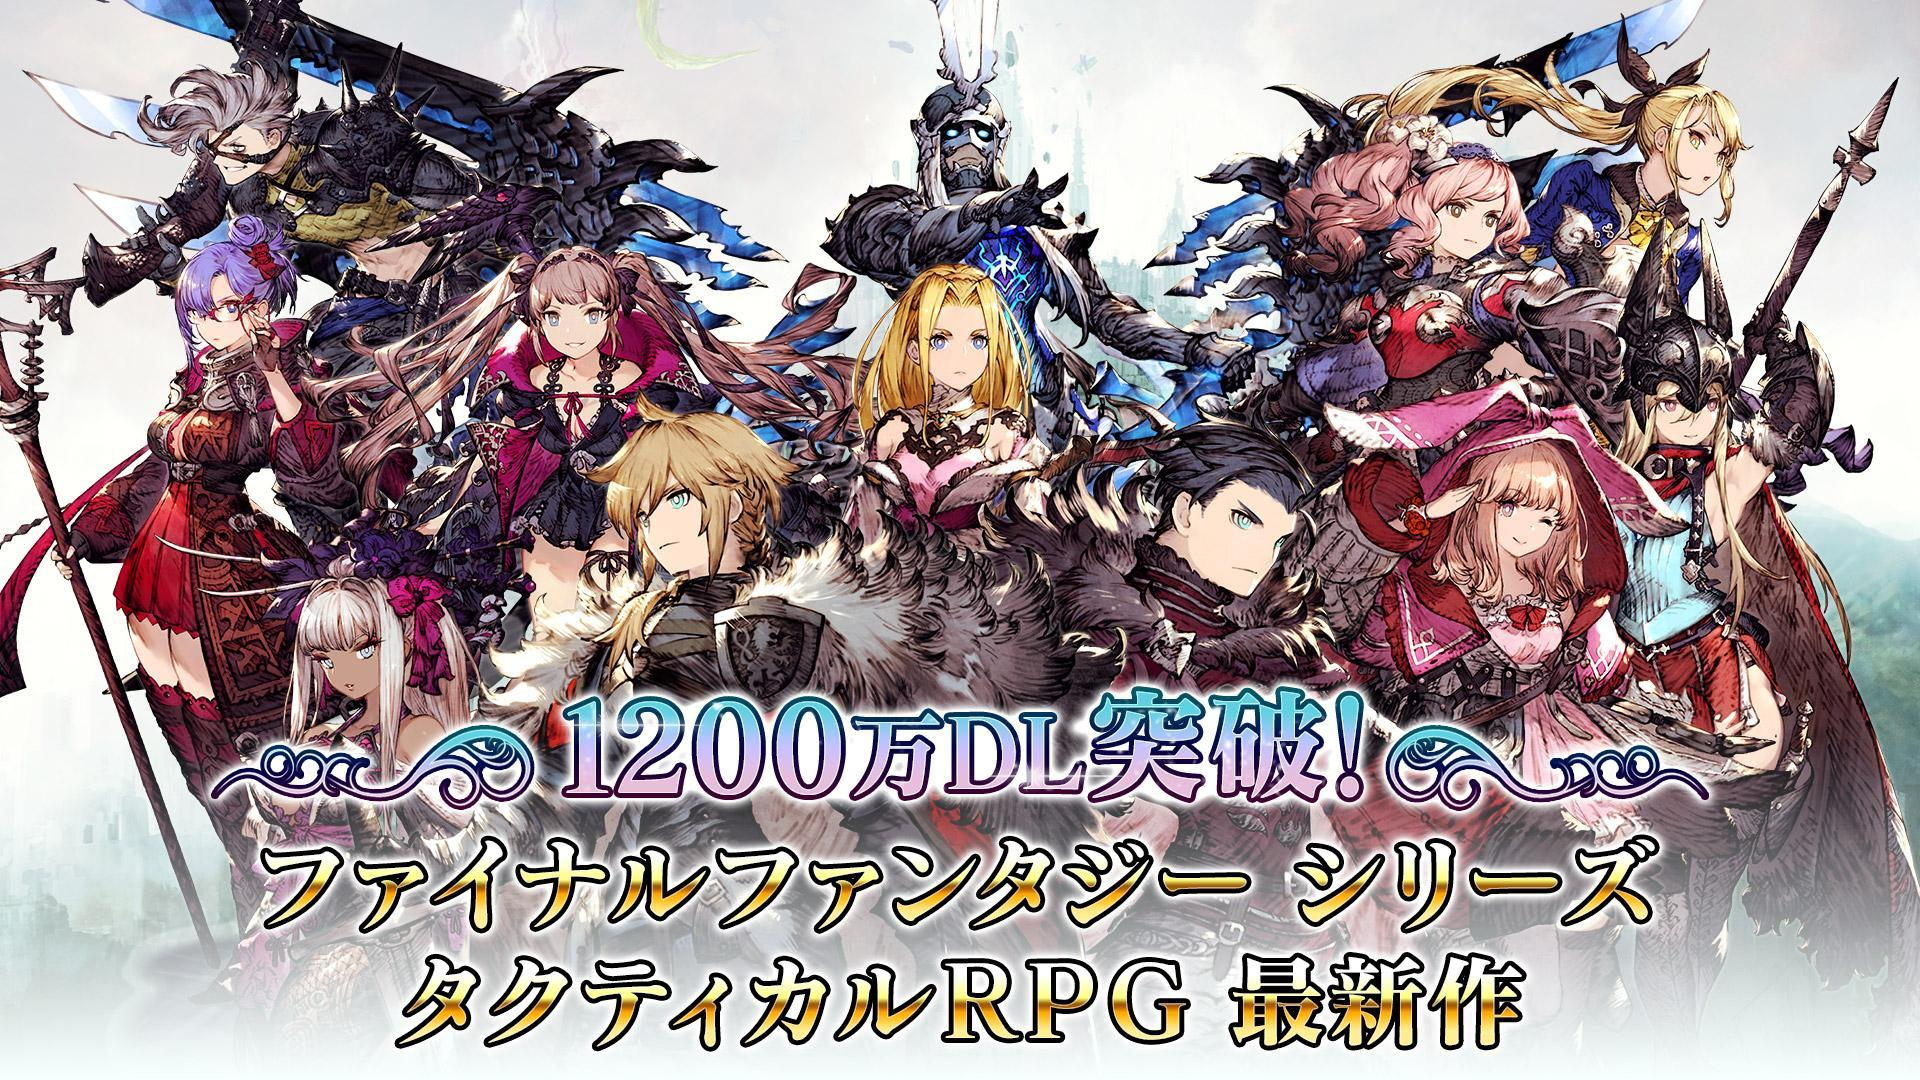 Ffbe幻影戦争 For Android Apk Download